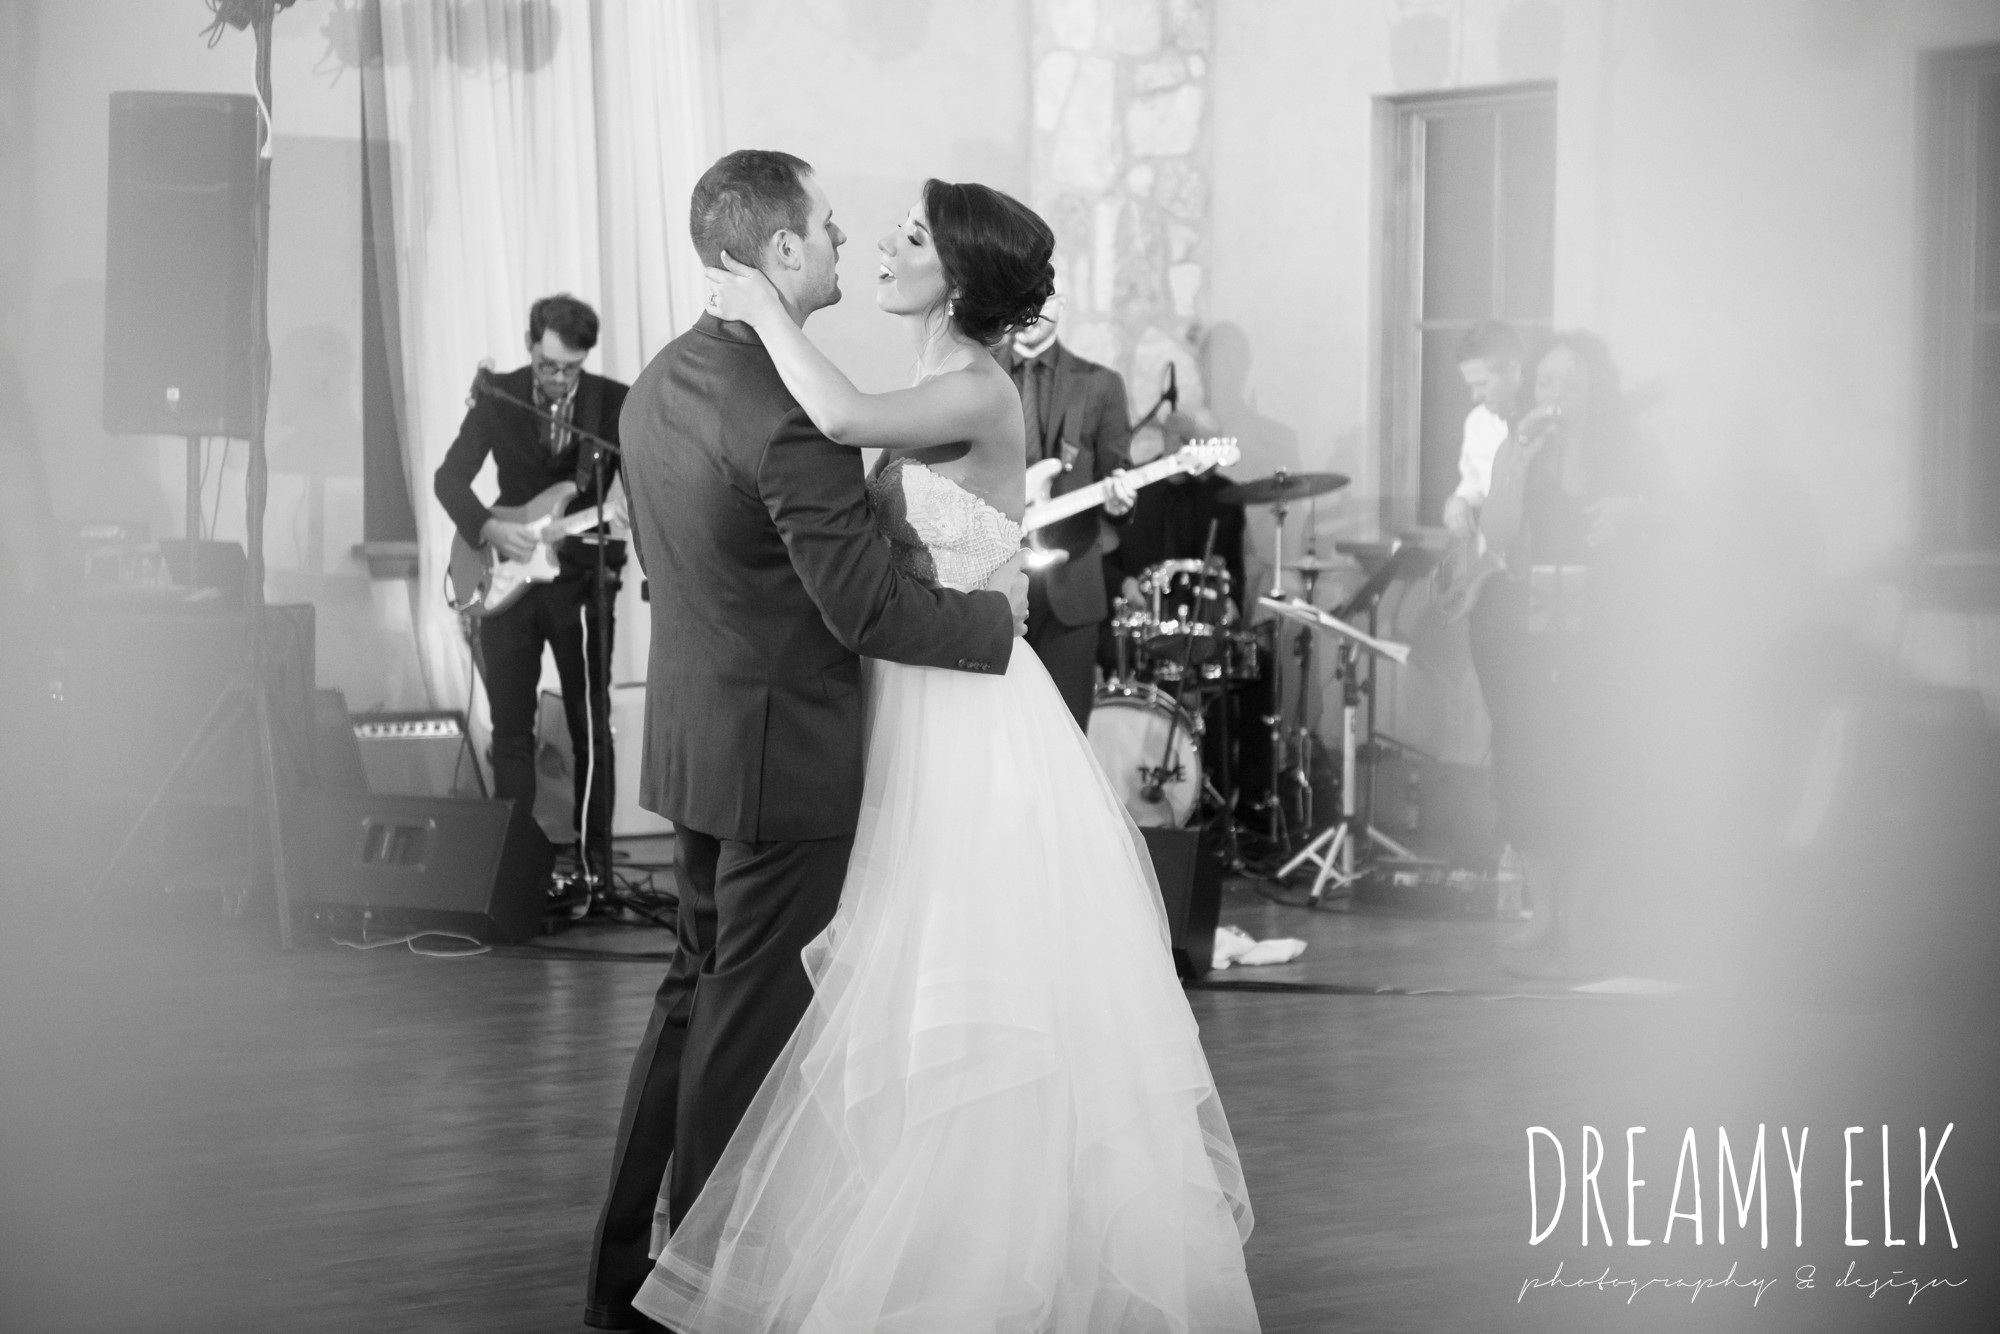 bride and groom last dance, wedding reception, the undercover band, outdoor fall october wedding photo, blush and gray wedding, balmorhea weddings and events, dreamy elk photography and design, austin texas wedding photographer